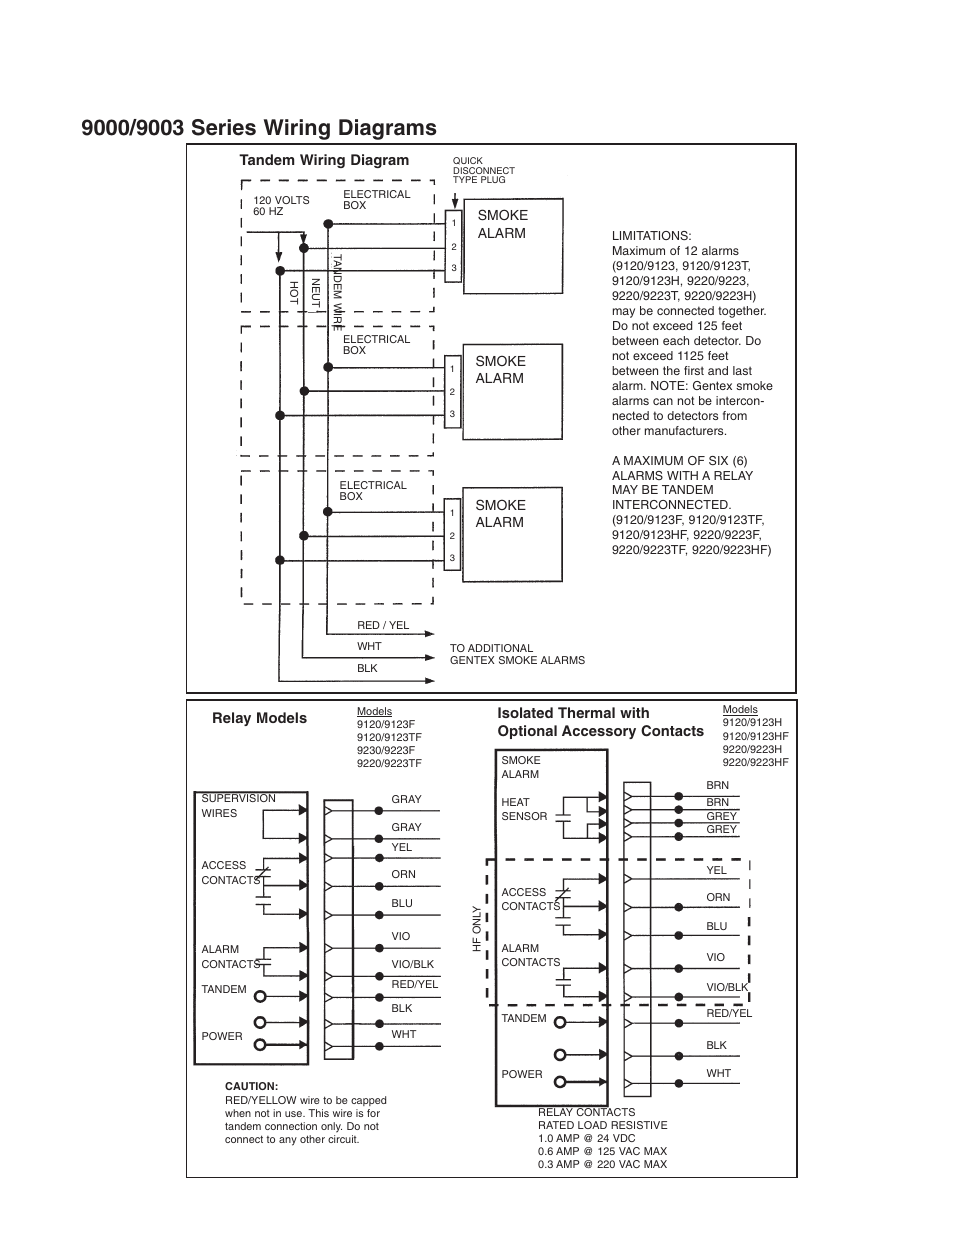 Smoke alarm, Tandem wiring diagram relay models, Isolated